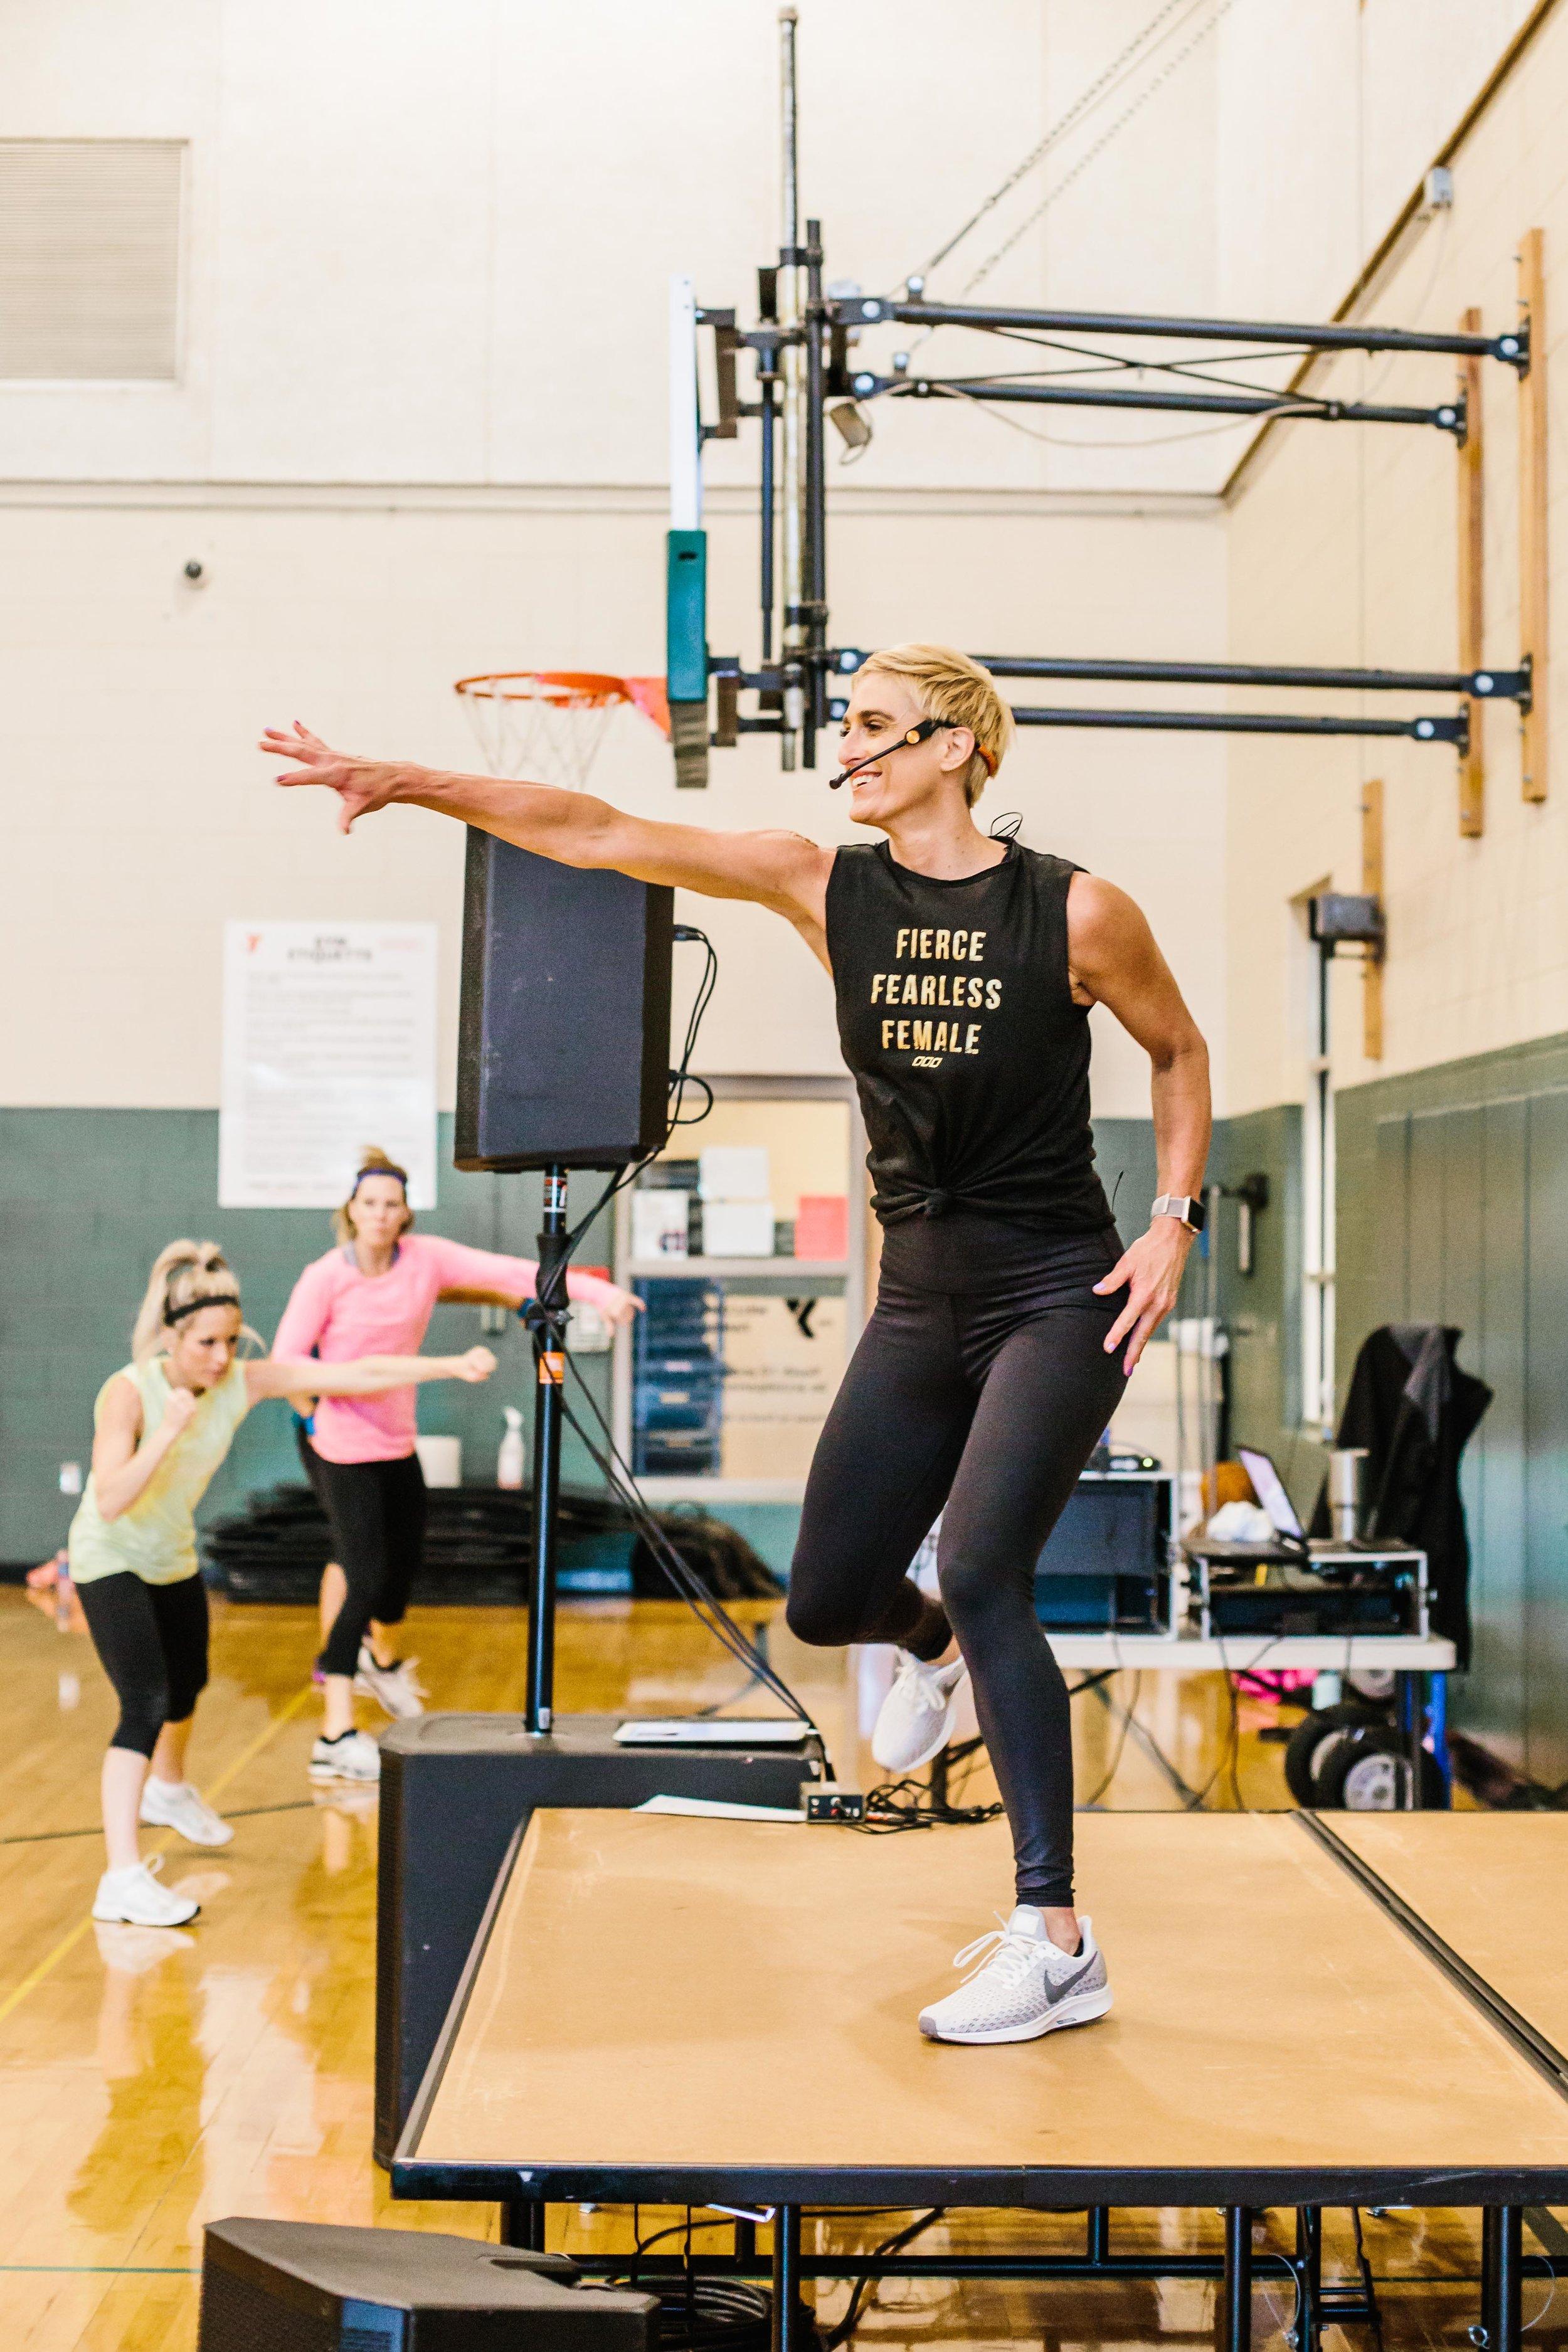 The Class: Fierce Fit Instructor:  Julie Voris  | Location:  Fishers YMCA  | Photo Cred:  Cotangent Studio